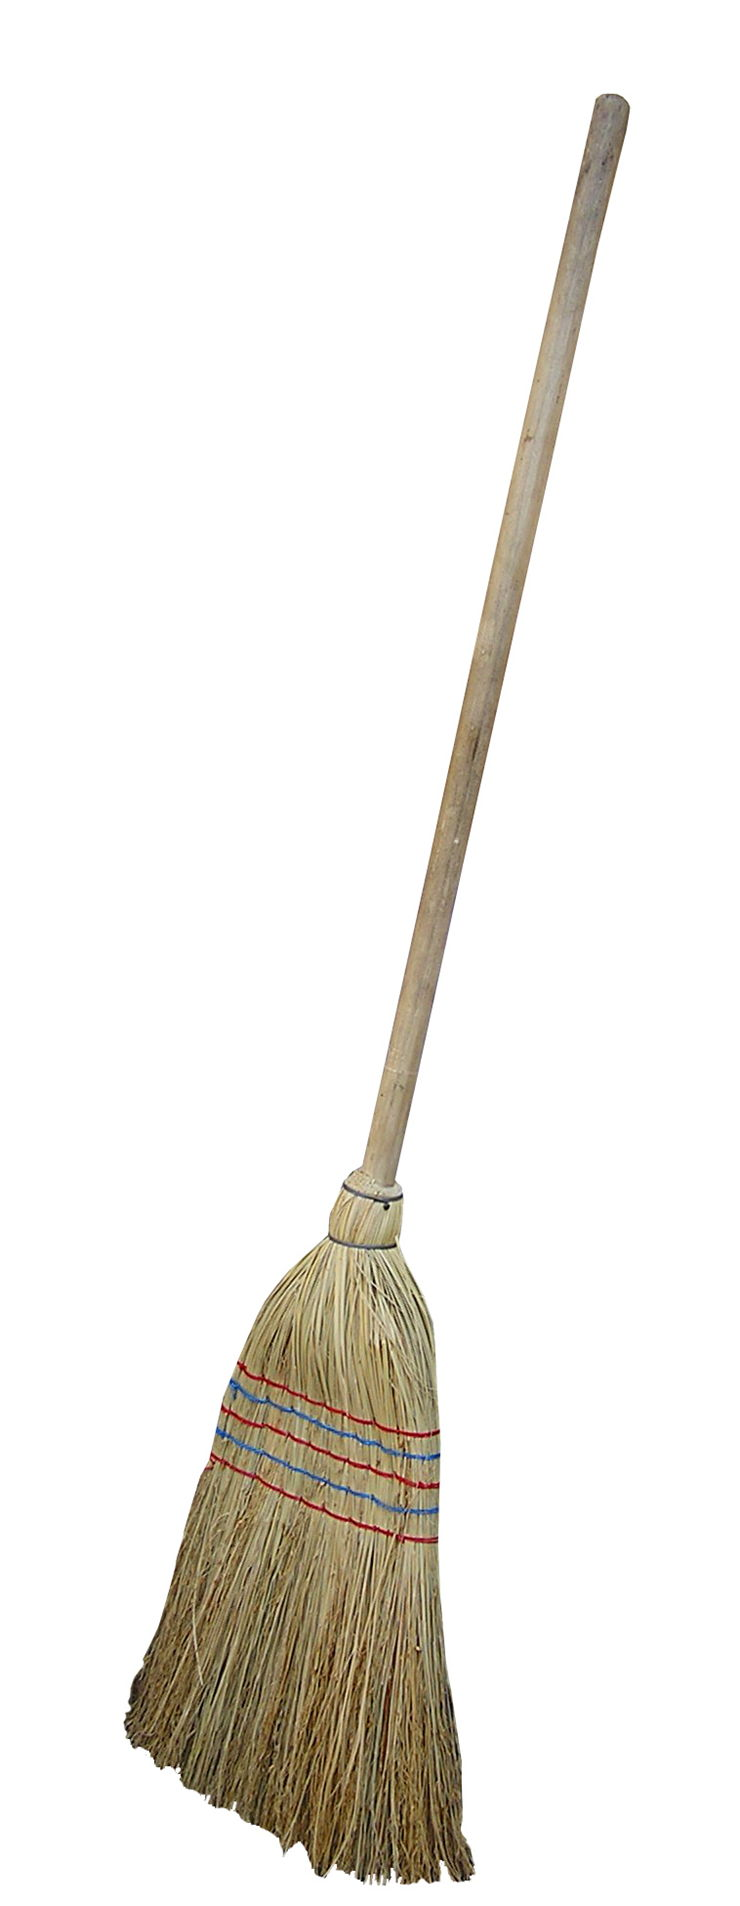 Picture Of A Broom For Cleaning